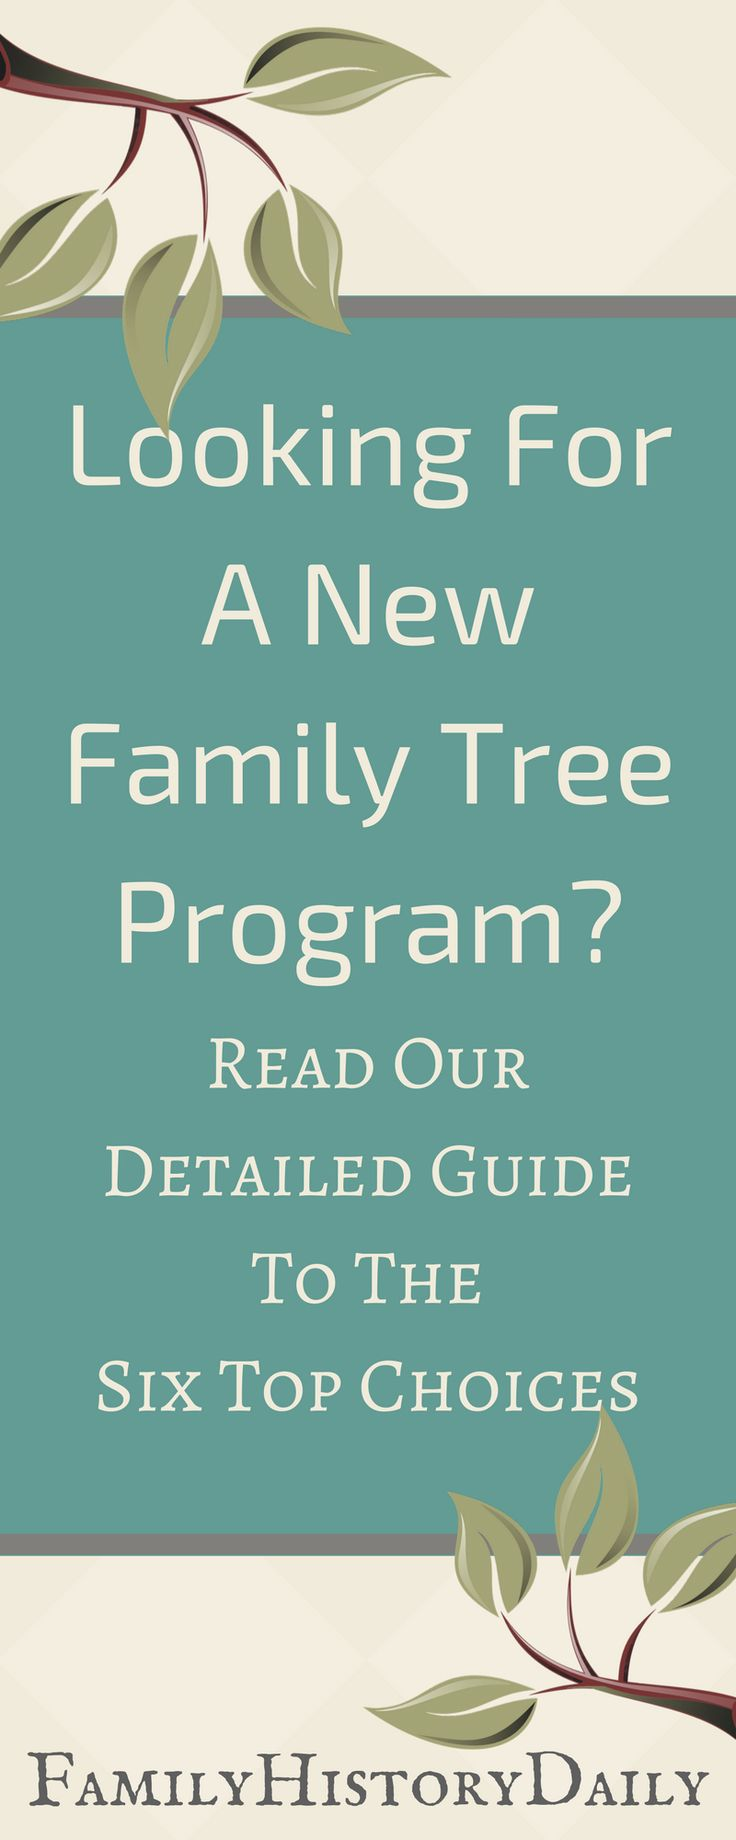 Looking for the best family tree program? Our quick comparison chart + detailed guide to the top tree software will help you choose the right one. #familytree #genealogyresearch #ancestry #familyhistory